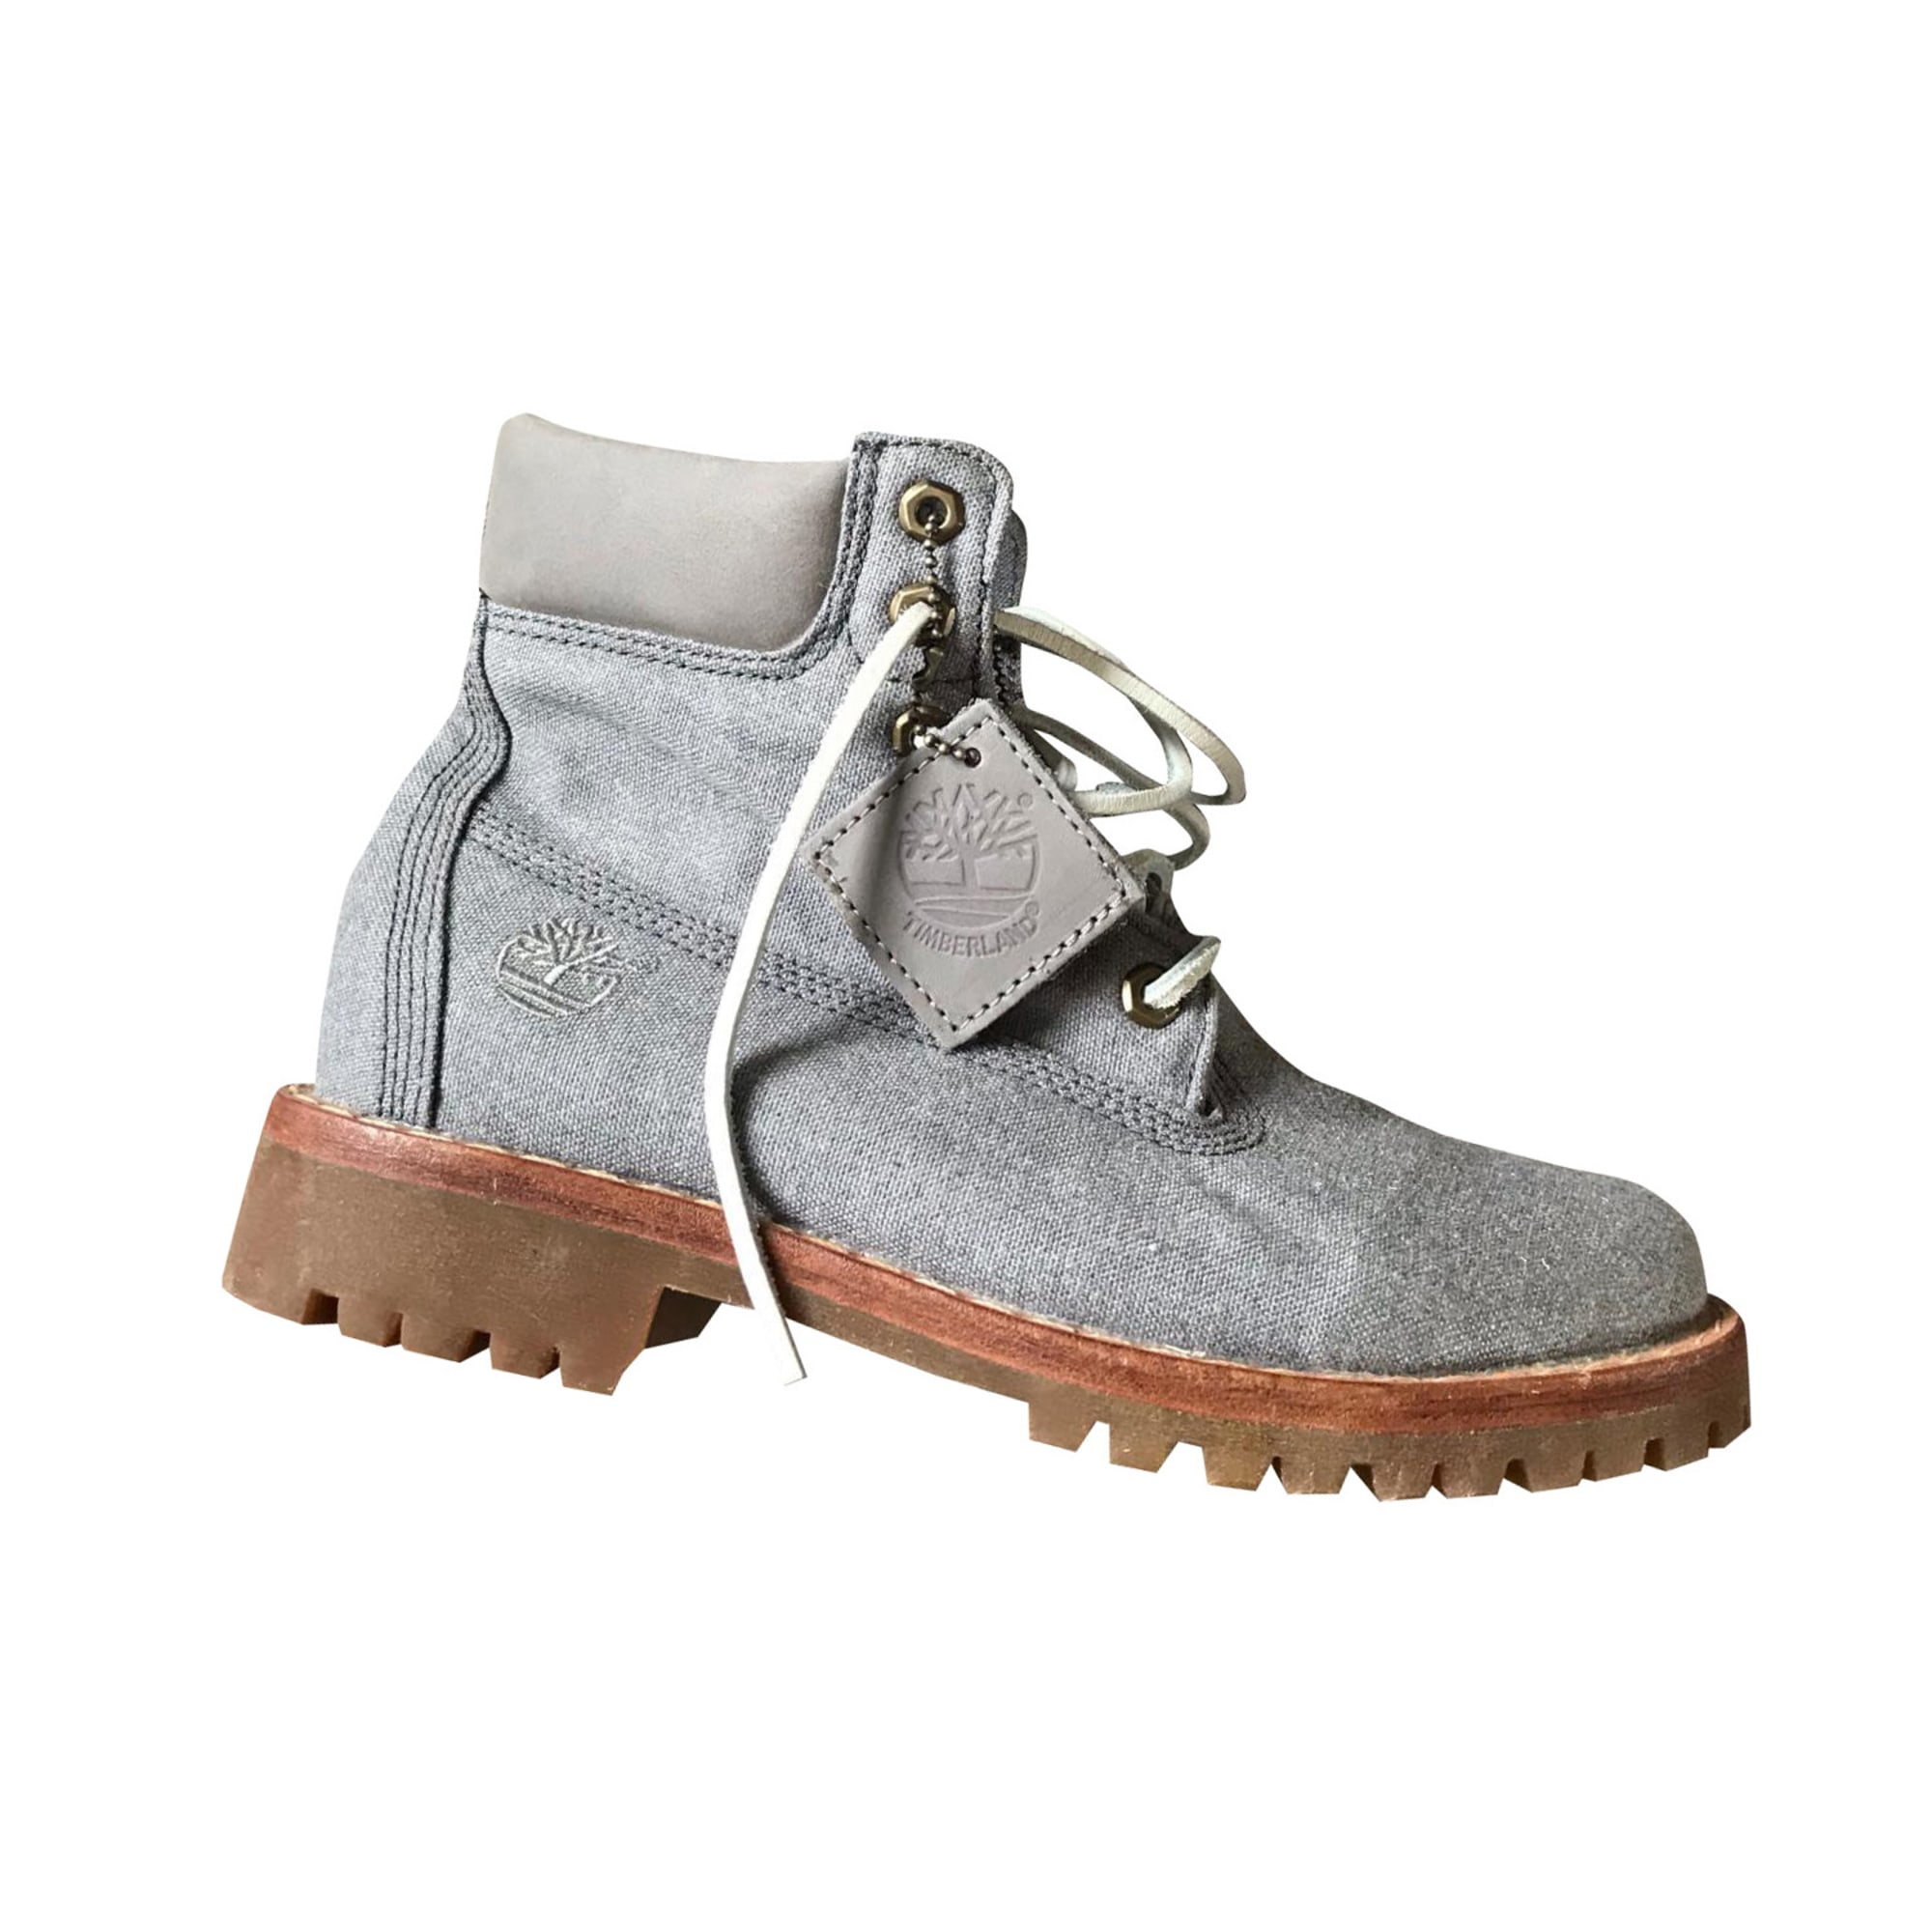 fa5bb176496 Chaussures à lacets TIMBERLAND 39 gris - 8720520